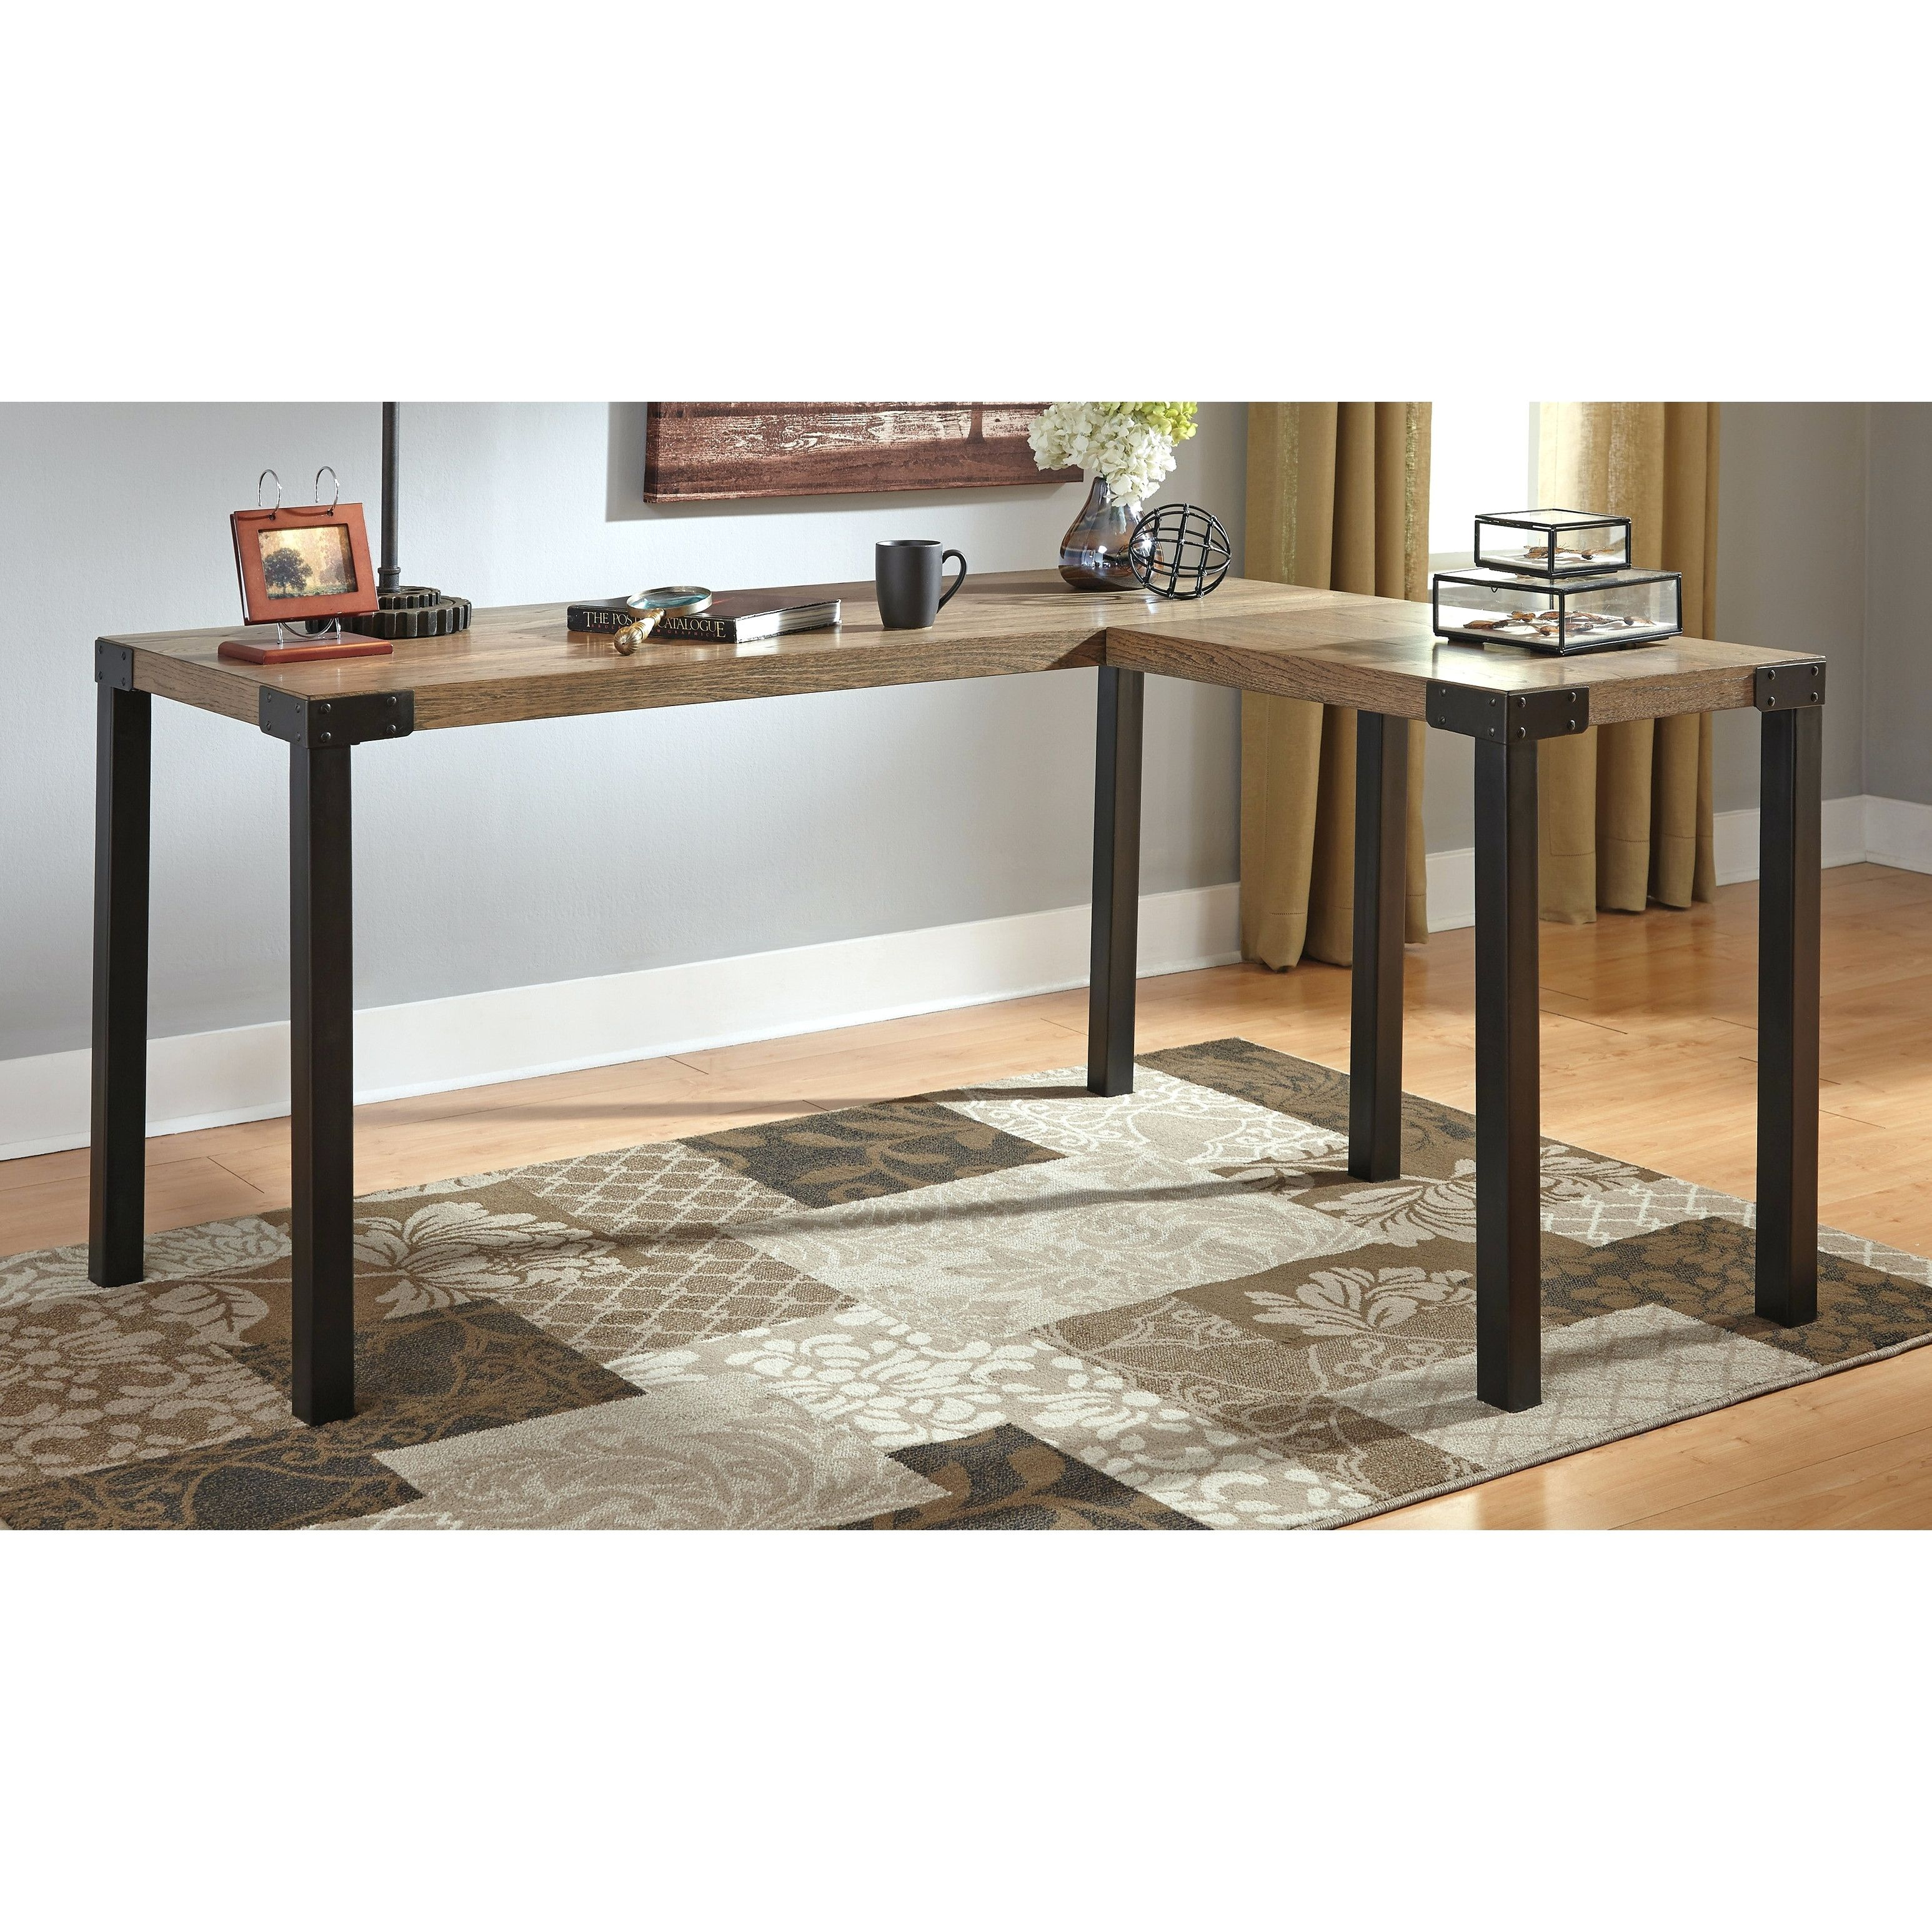 99 Mirrored Corner Desk Home Office Furniture Check More At Http